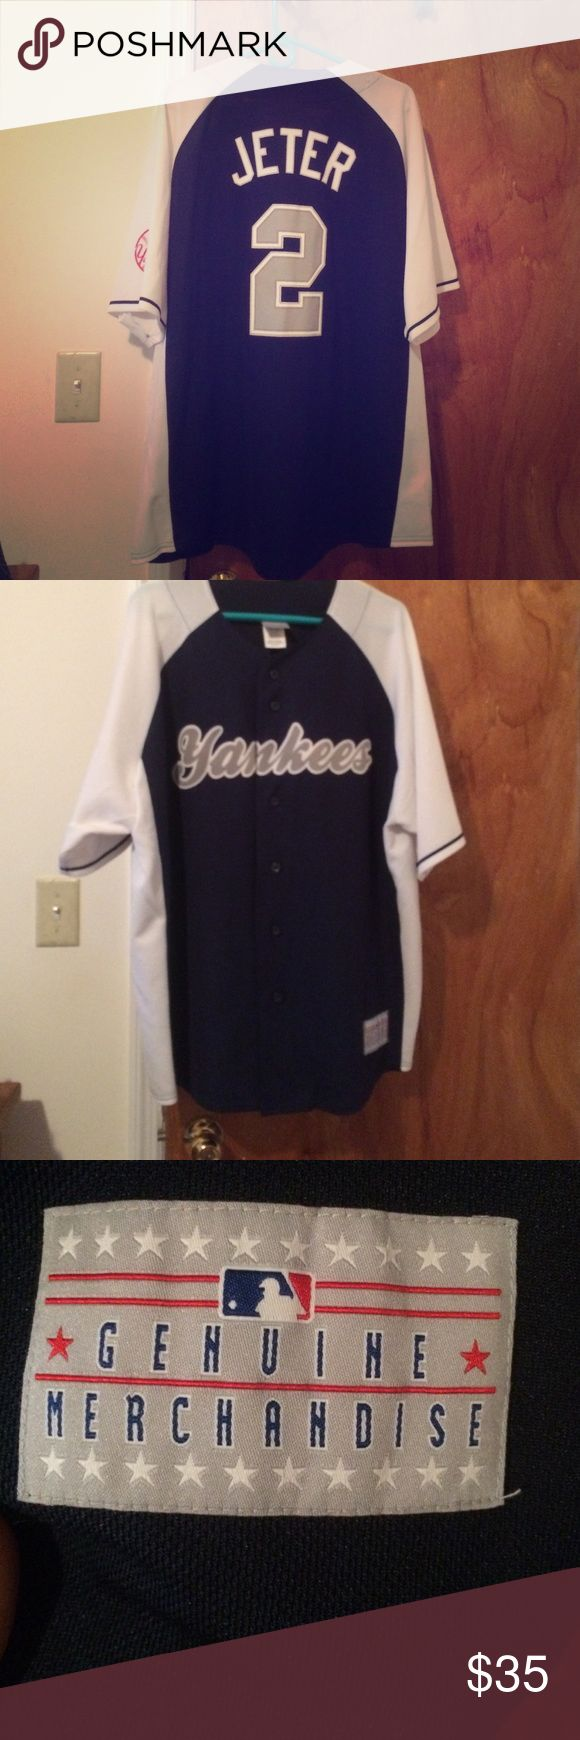 Derek Jeter Jersey Genuine MLB Merchandise. Derek Jeter jersey. Too big for me now, only reason I'm selling it. Size 2xl MLB Official Merchandise  Other